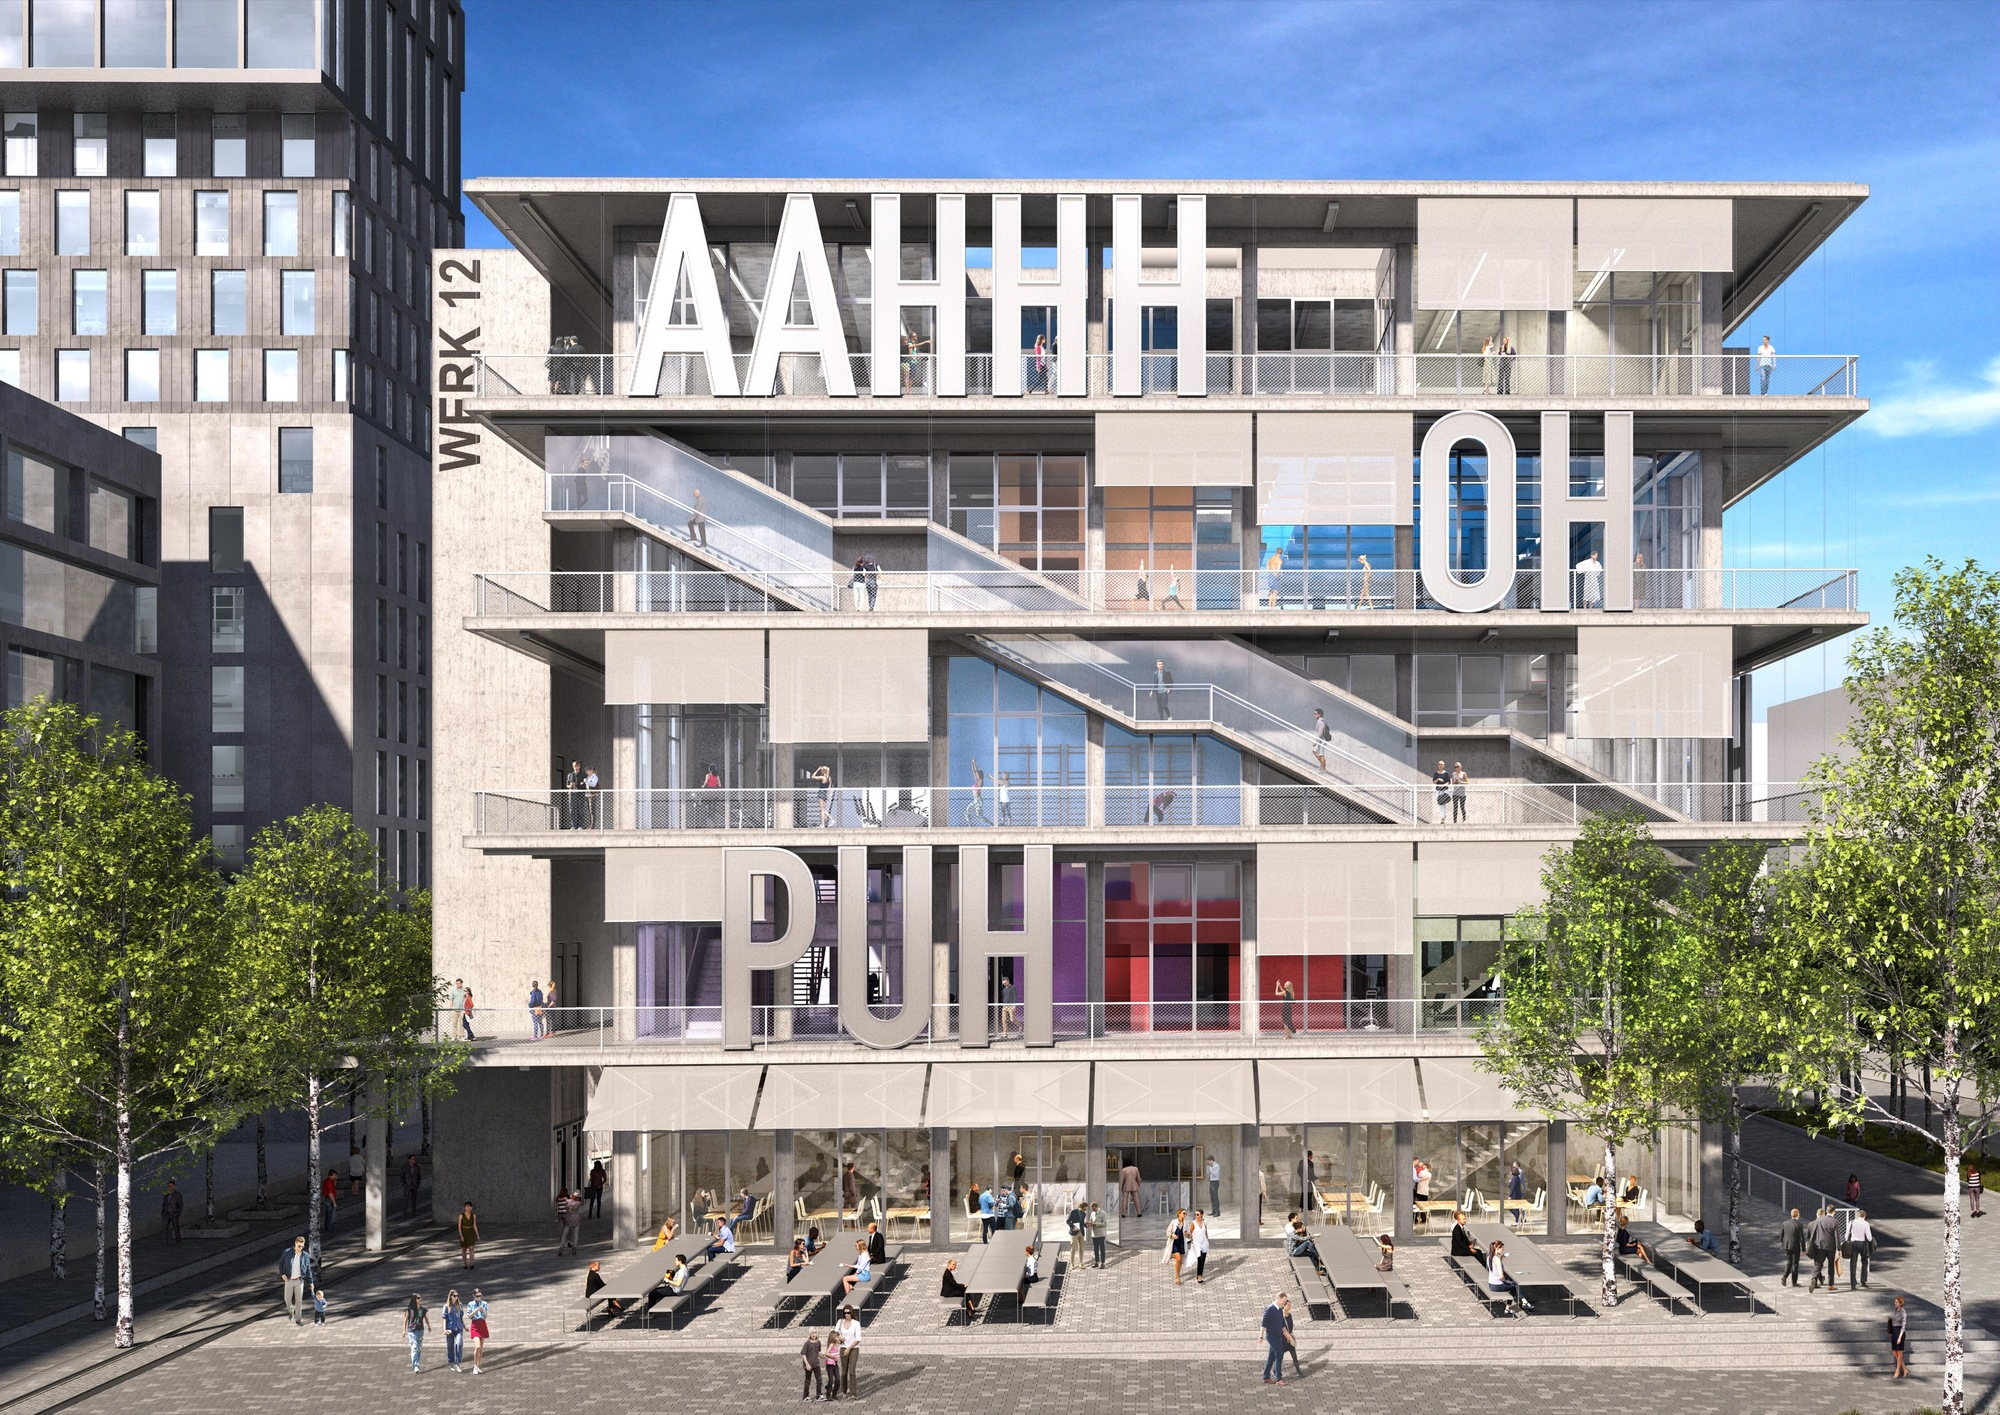 Gallery of MVRDV Clad Flexible. Mixed-Use Munich Building in Giant German Slang Words - 2